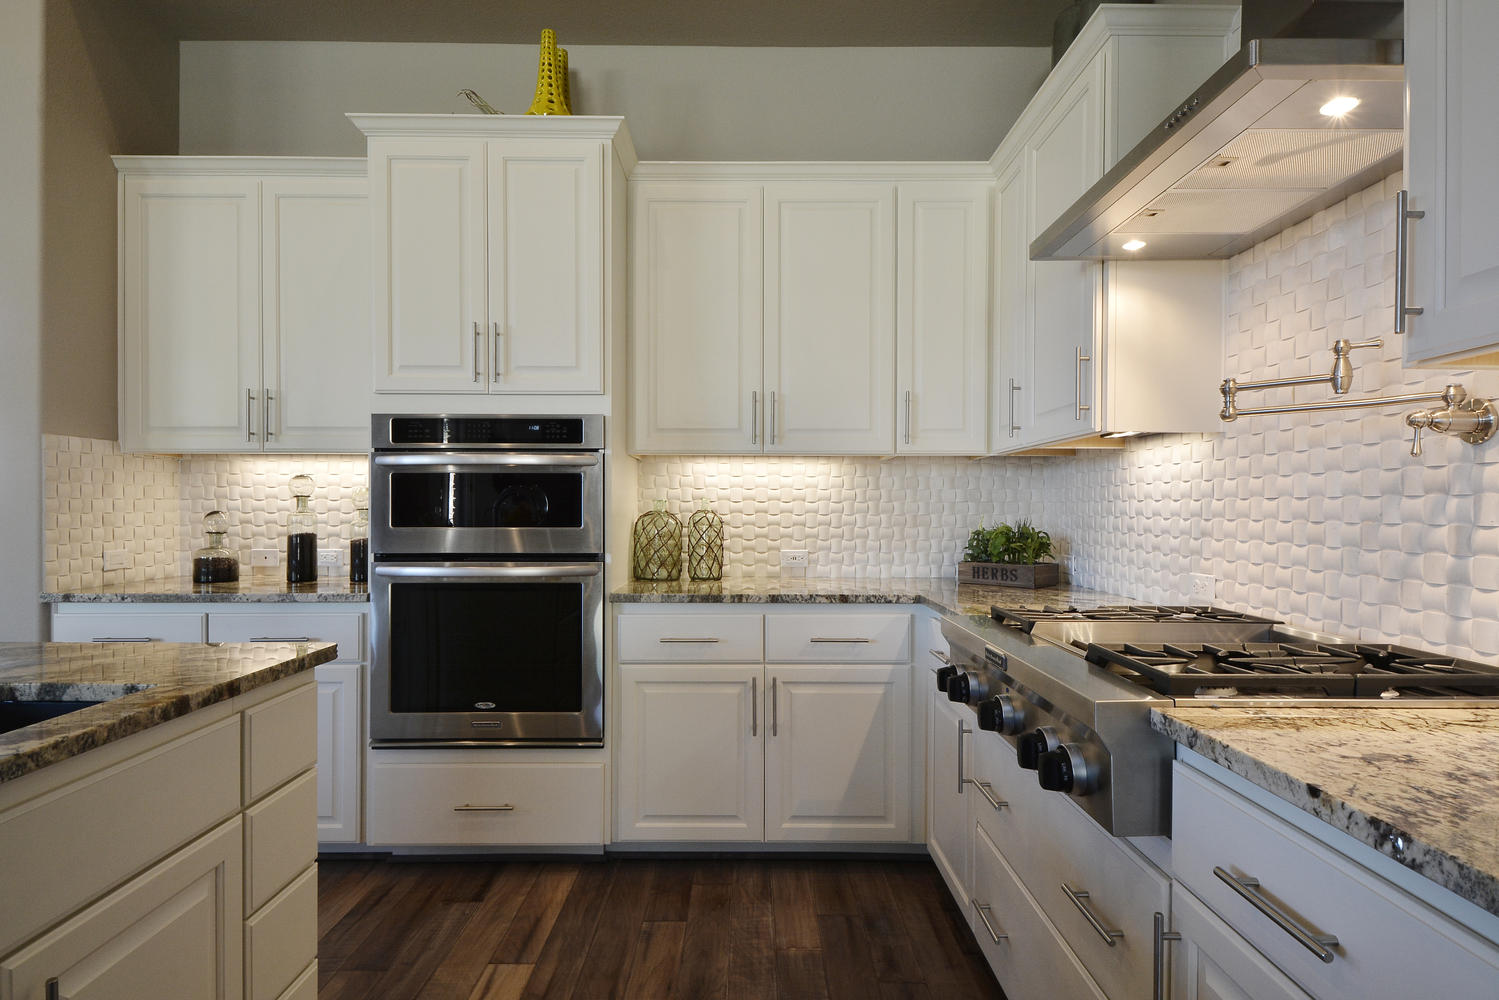 White kitchen cabinets burrows cabinets central texas for White cabinets